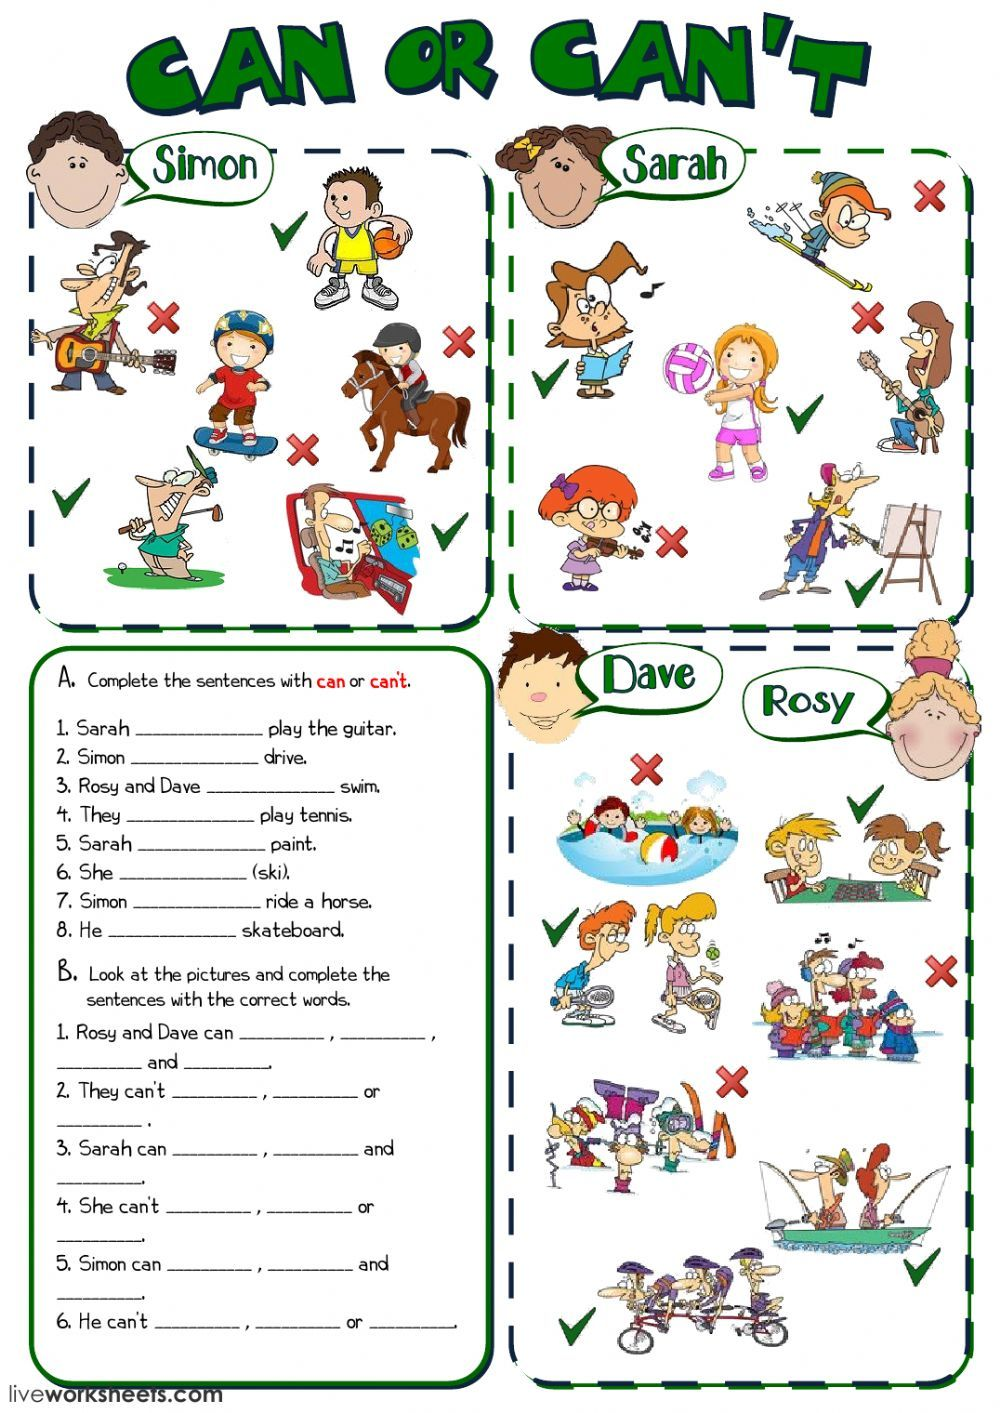 Modal Verbs Interactive And Downloadable Worksheet You Can Do The Exercises Online Or Do English Lessons For Kids English Lessons English As A Second Language [ 1413 x 1000 Pixel ]